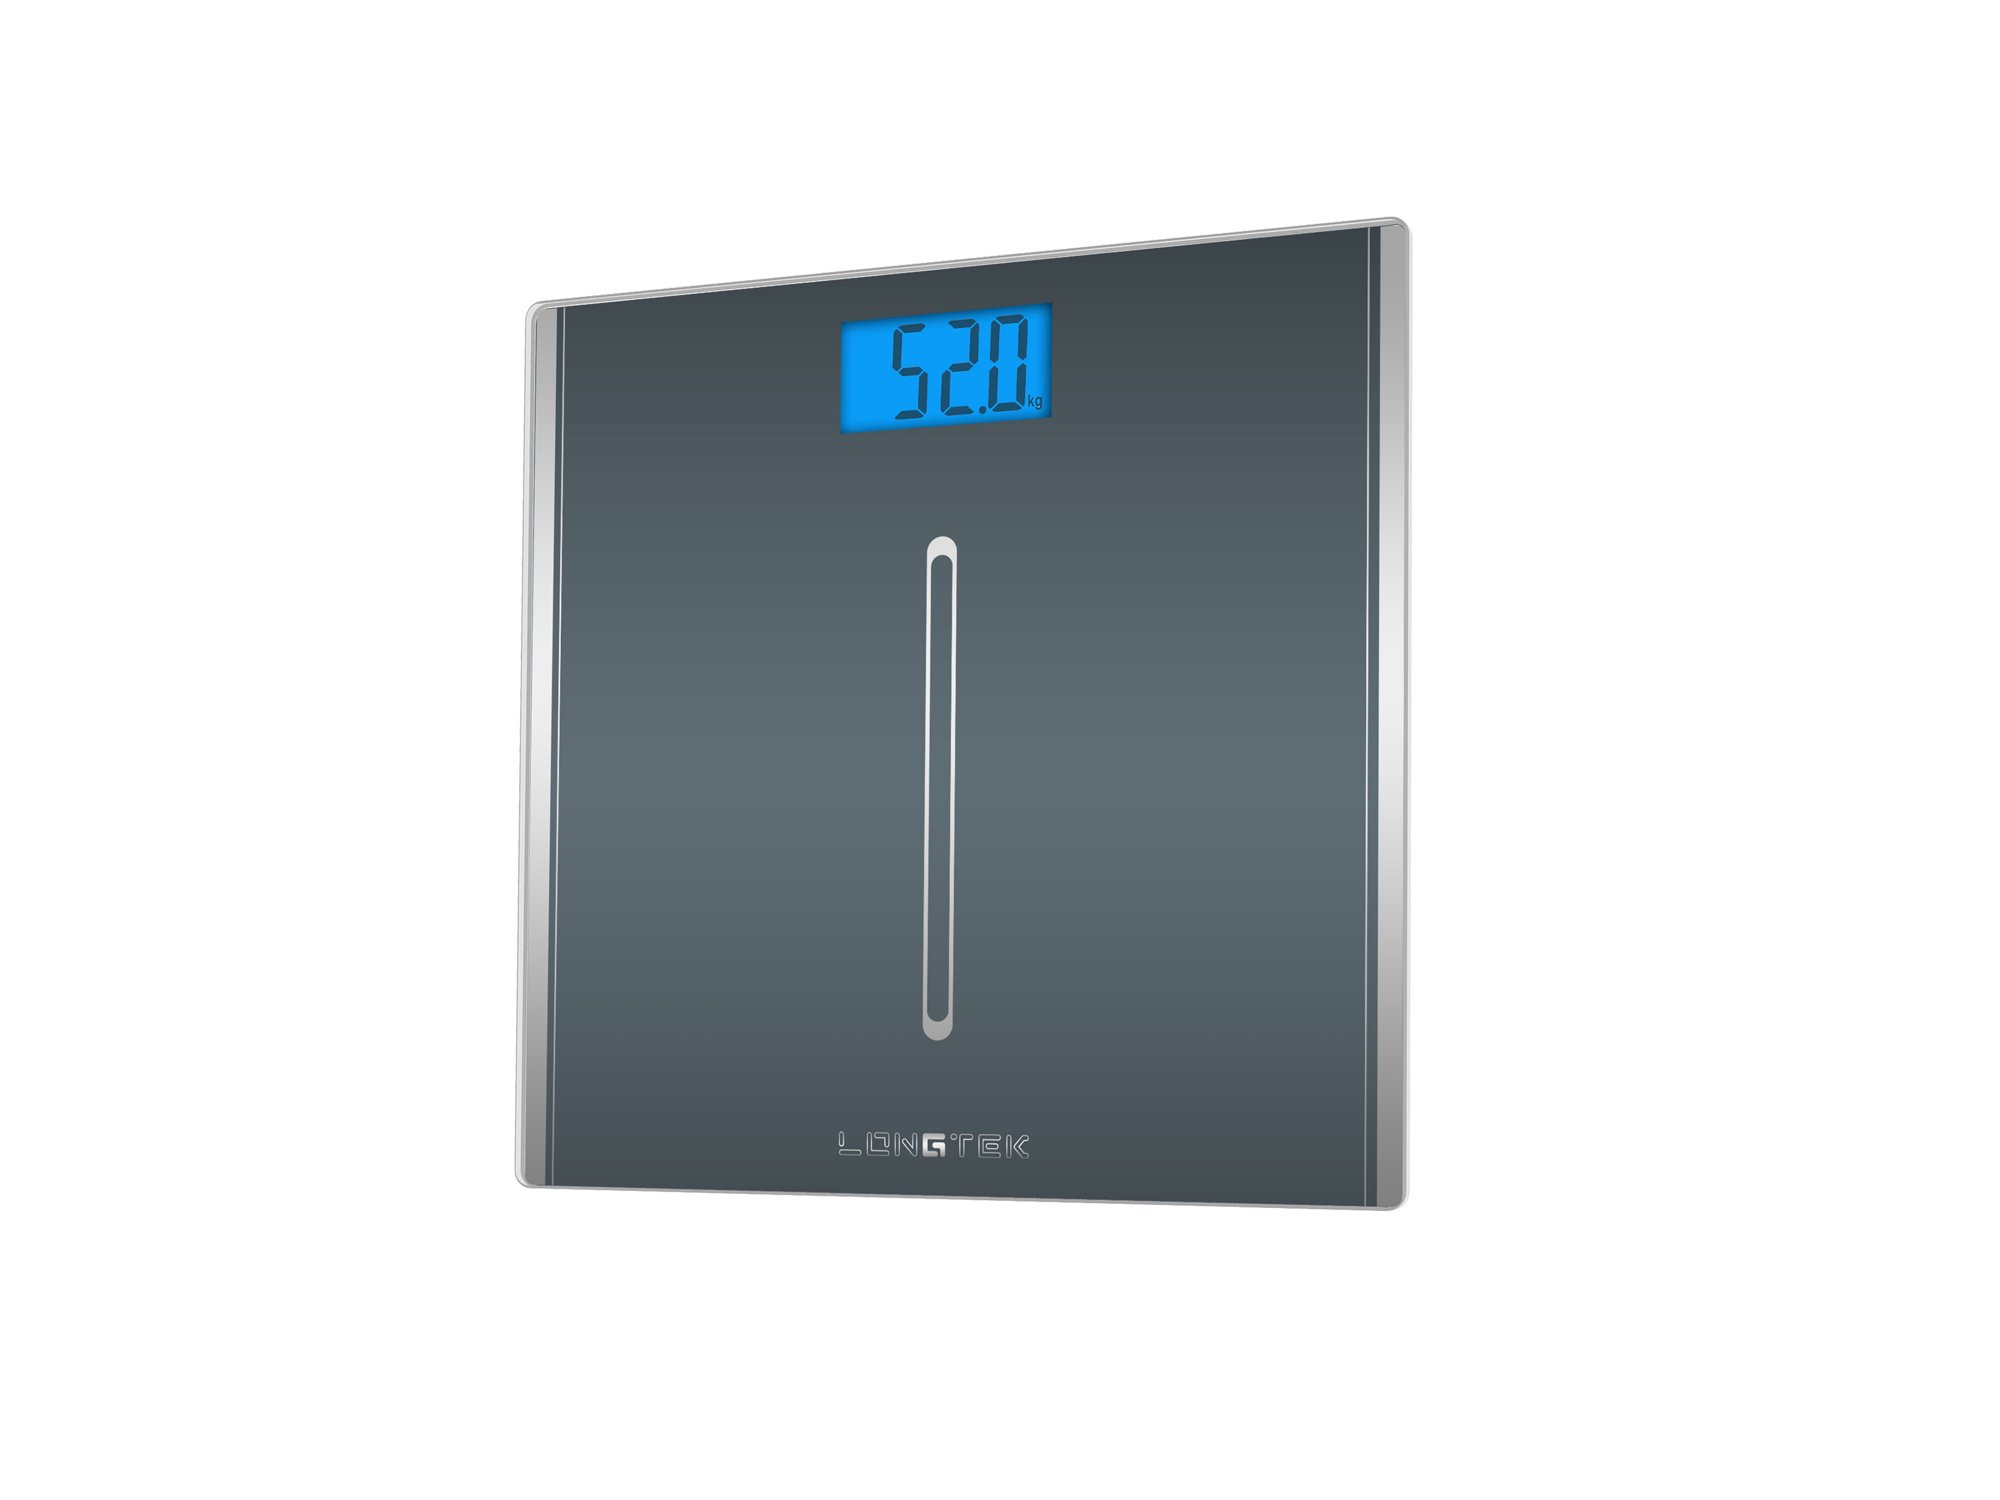 Longtek Bathroom, Digital Weighting Scale, Tempered Glass Body Weight Scale, High Accuracy Digital, 400 lb., Elegant Gray